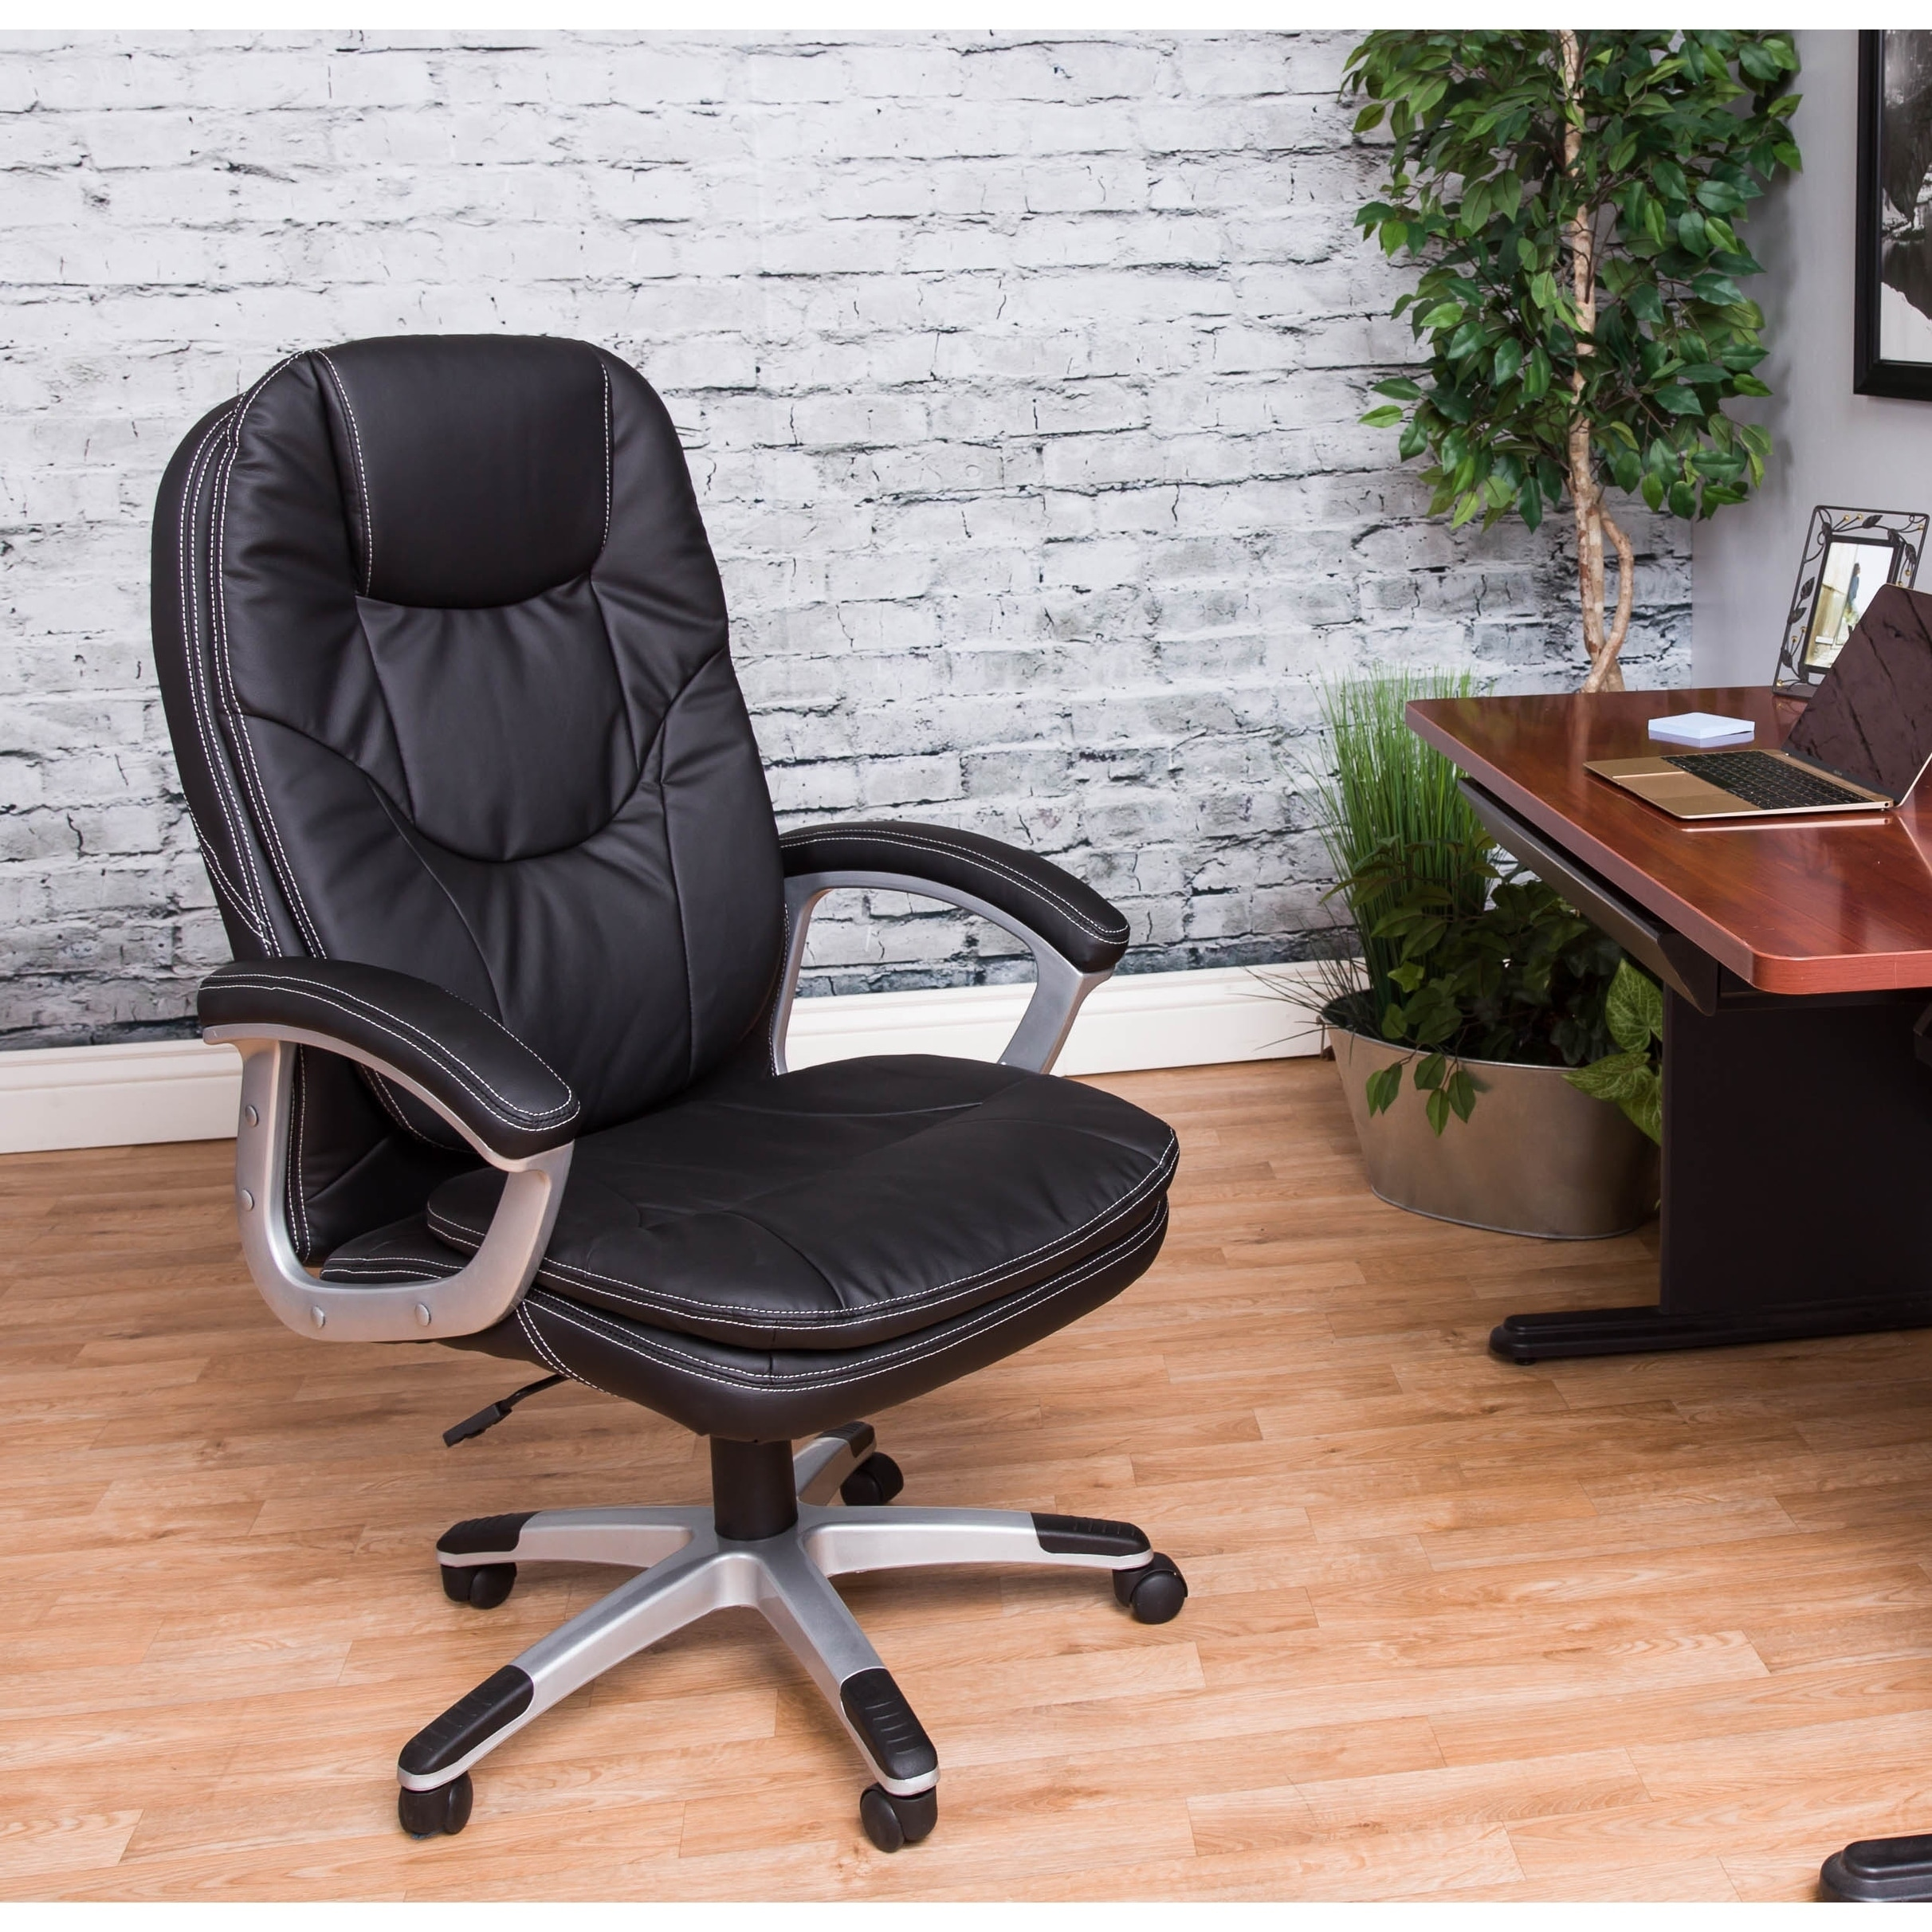 Shop vogue furniture direct modern high back executive chair black free shipping today overstock com 20908656